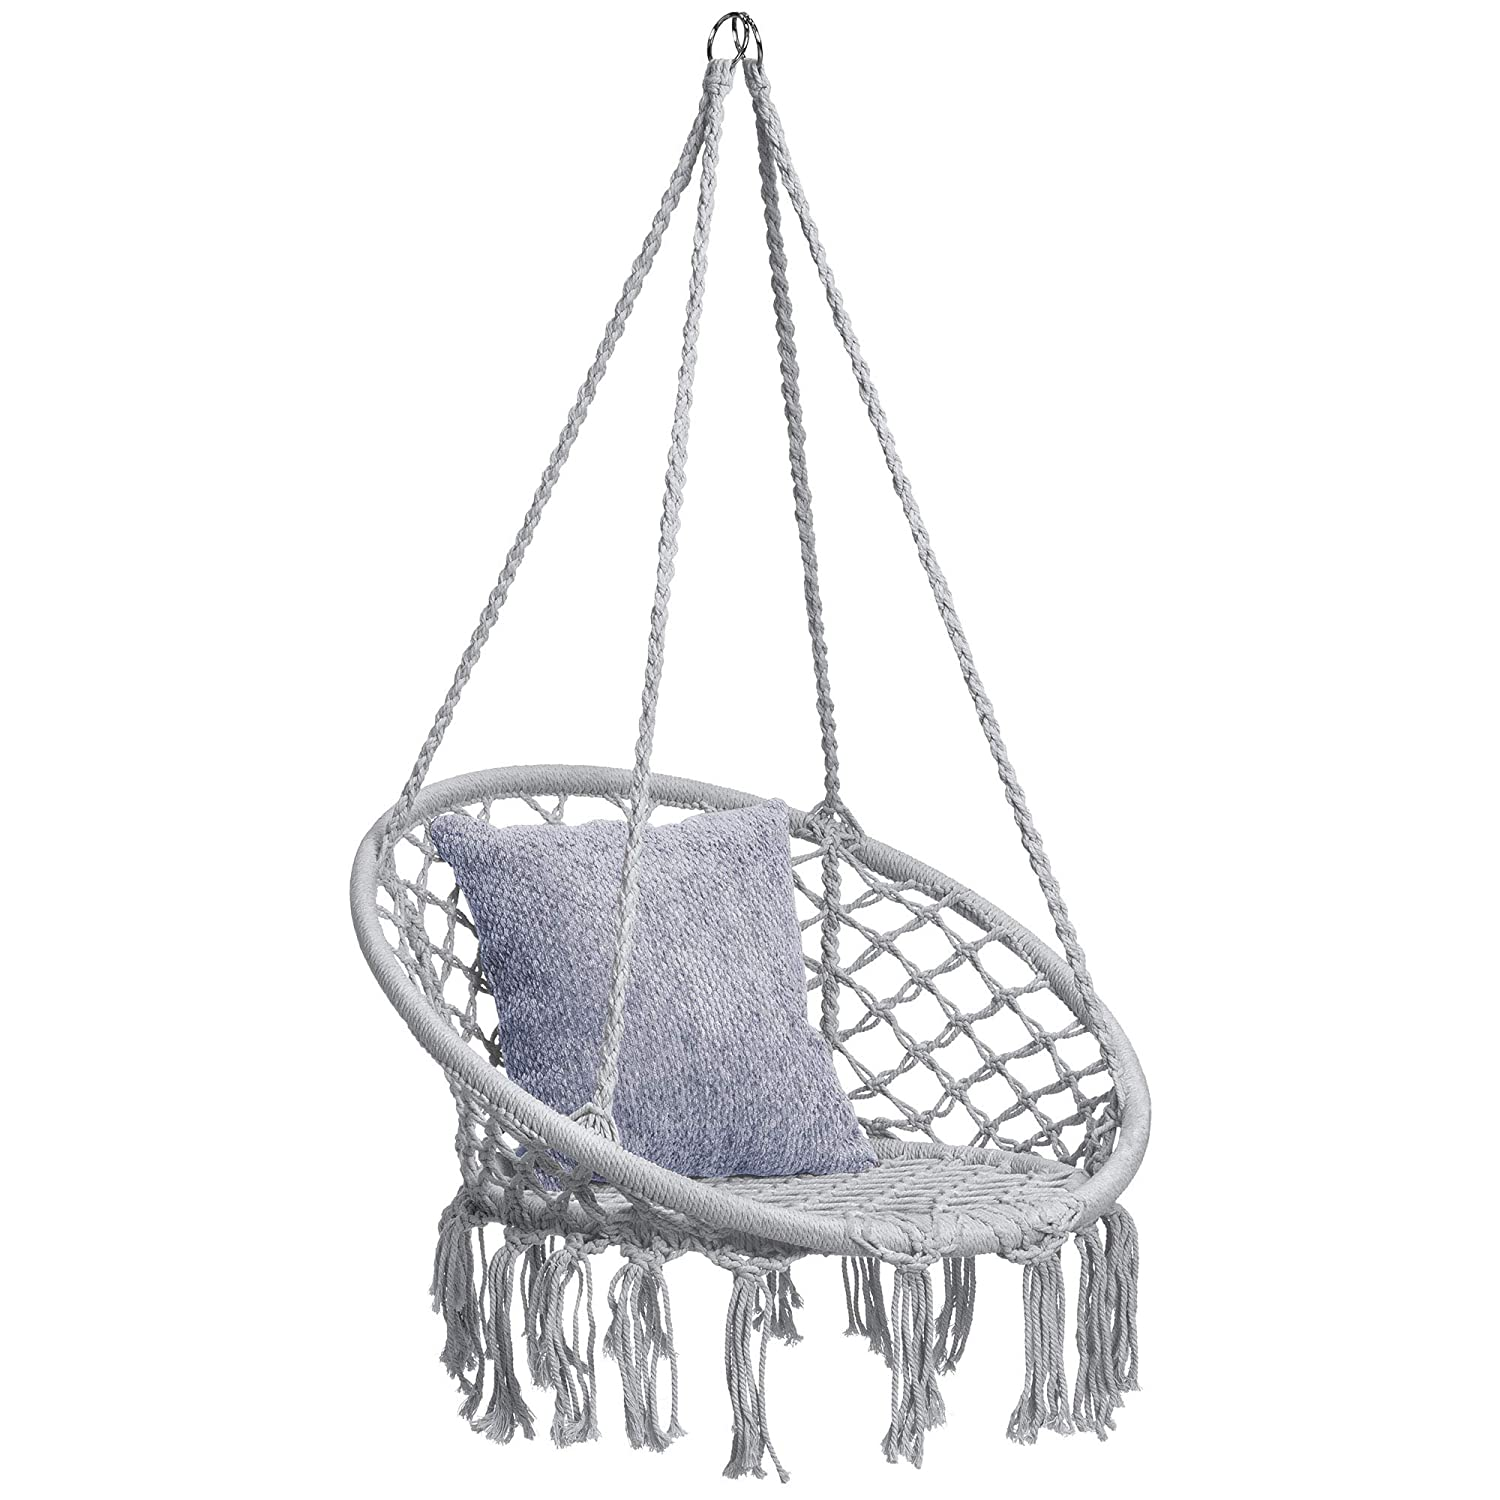 Best Choice Products Indoor/Outdoor Hanging Cotton Macrame Rope Hammock Lounge Swing Chair w/Fringe Tassels - Gray